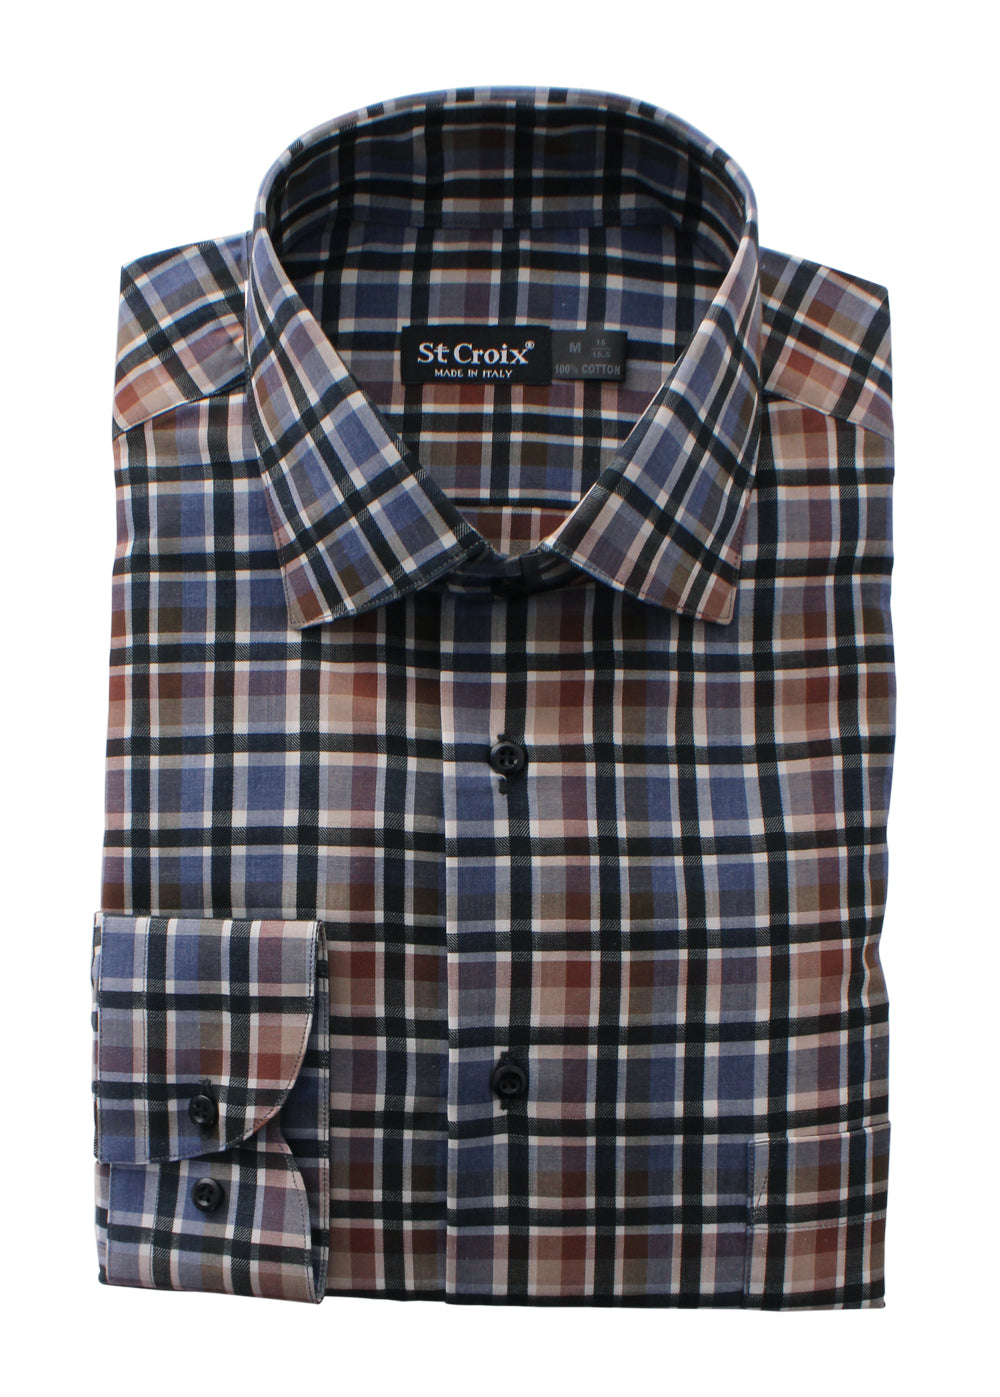 St. Croix Shadowbox Plaid Sport Shirt in Blue Tan